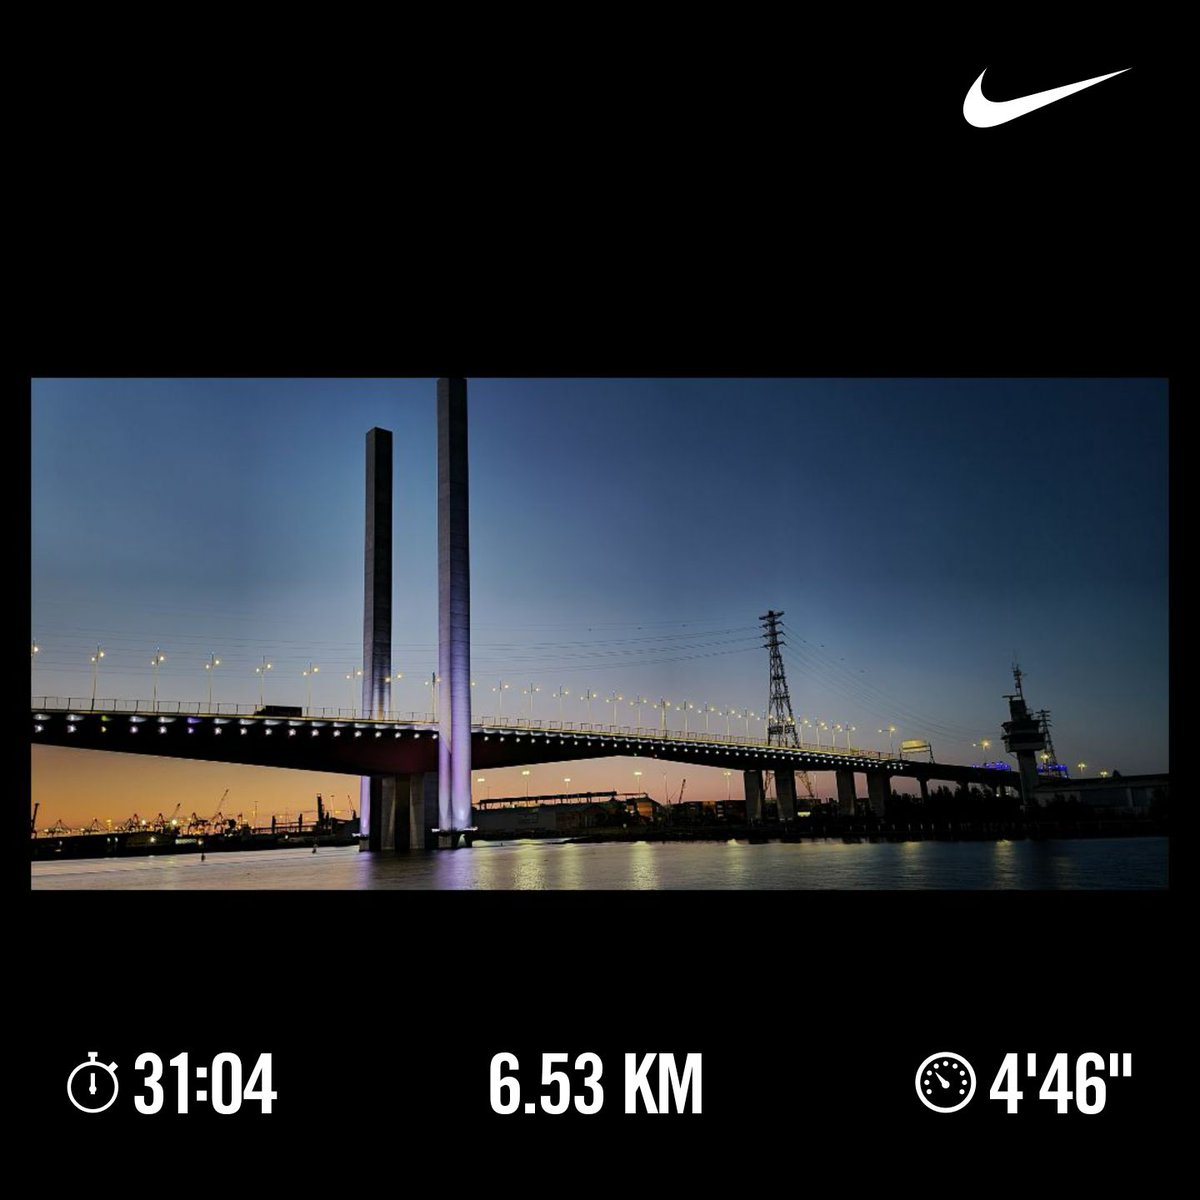 #Run 51 2020: 6.53 km running in 31.04 mins🏃‍♂️🏃‍♂️   Stunning sunset evening and pleasant weather. Have a good time being at track.  #asics #runner  #outdoors #runningmanlive #50run2020 https://t.co/RGqKKYE12o